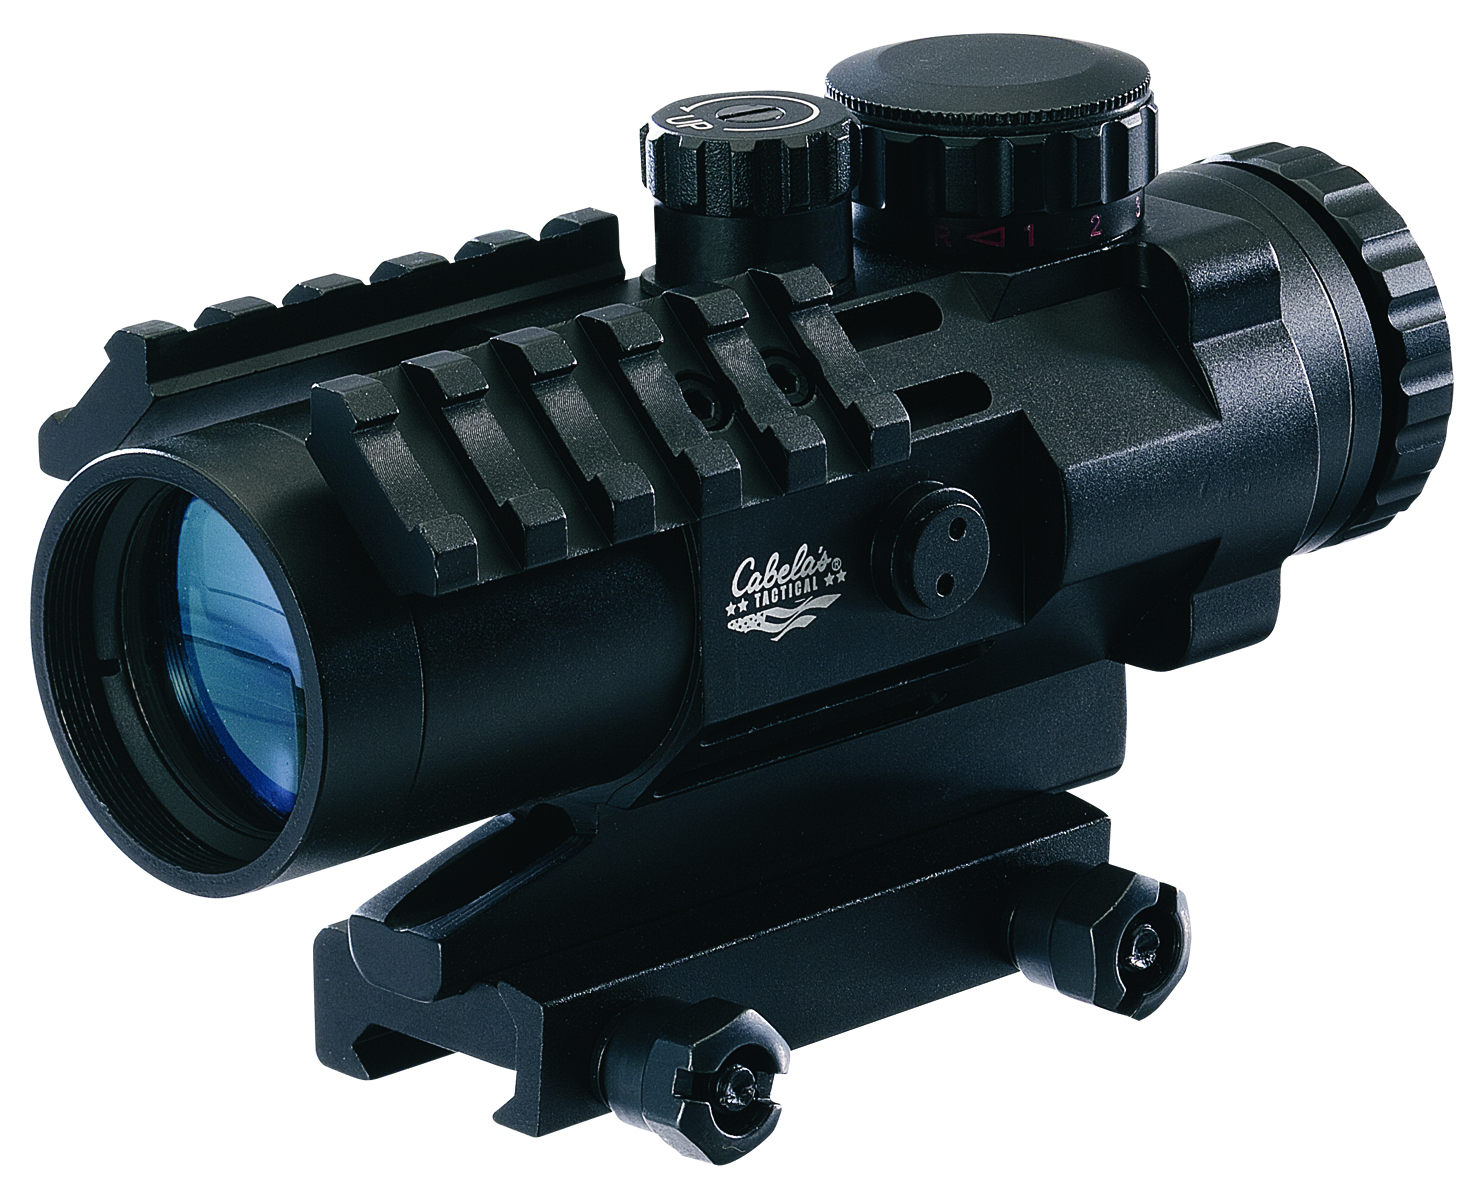 //www.gunsandammo.com/files/fathers-day-gifts-for-the-tactical-dad/cabelas-tactical-prism-sight2.jpg